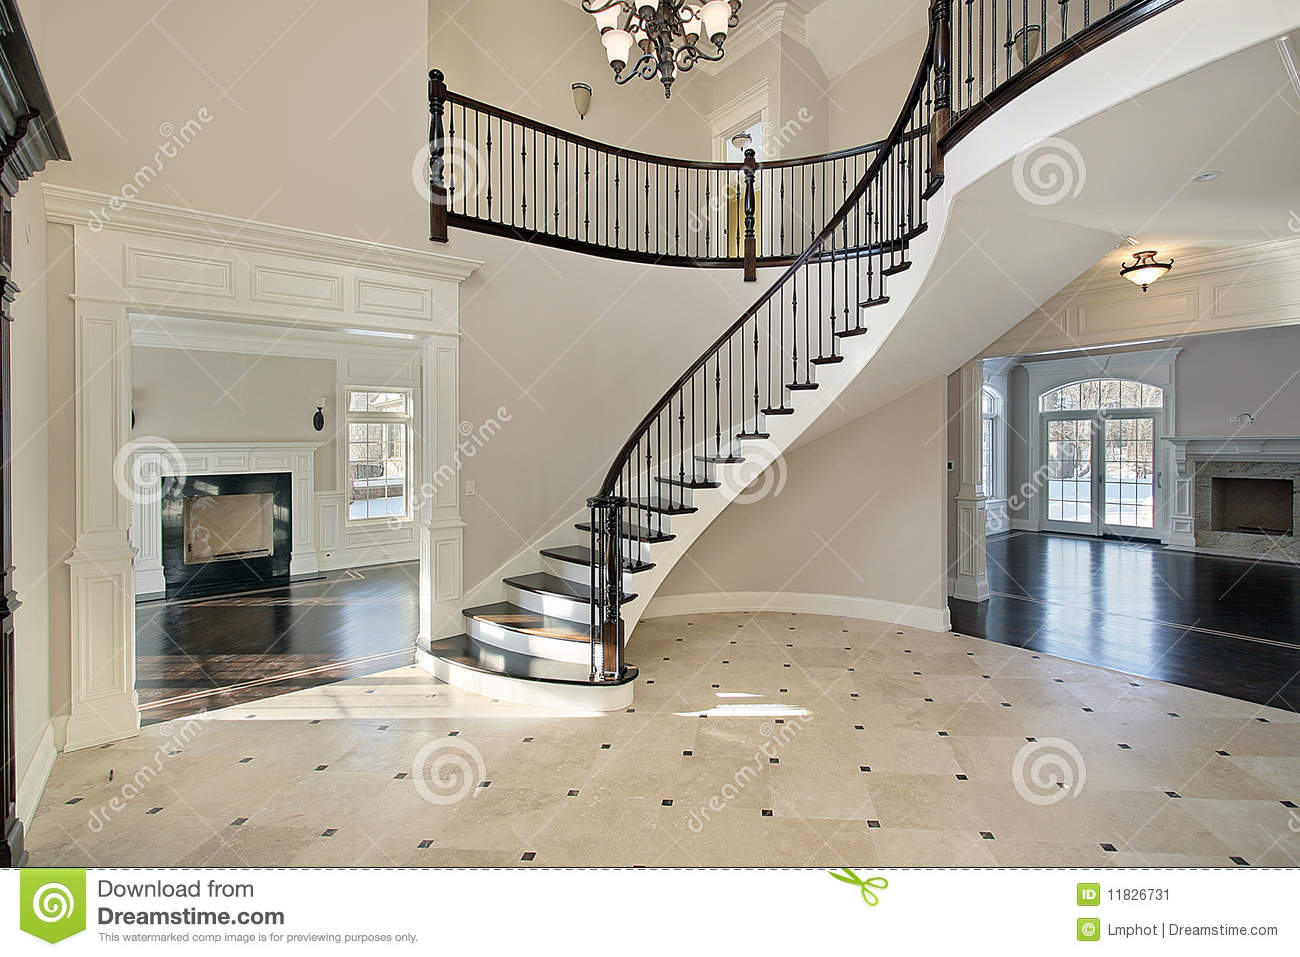 Foyer Spiral Staircase : Foyer with spiral staircase stock image of